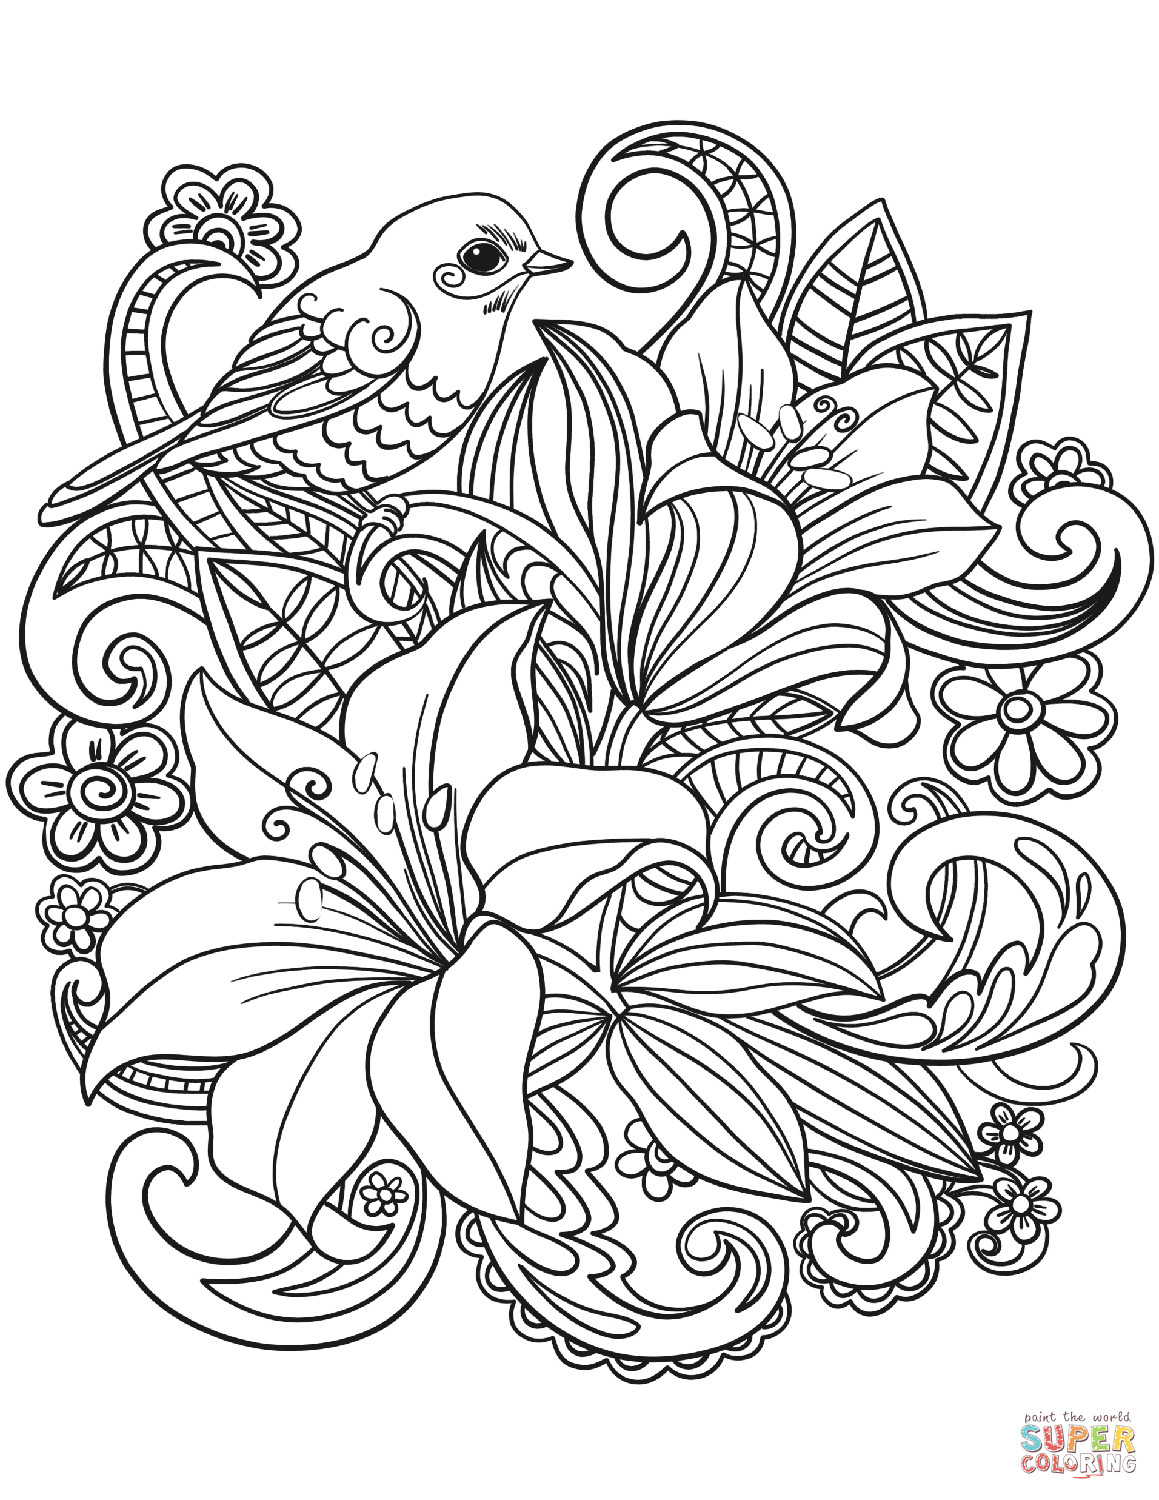 Best ideas about Printable Coloring Pages Flowers . Save or Pin Skylark and Flowers coloring page Now.